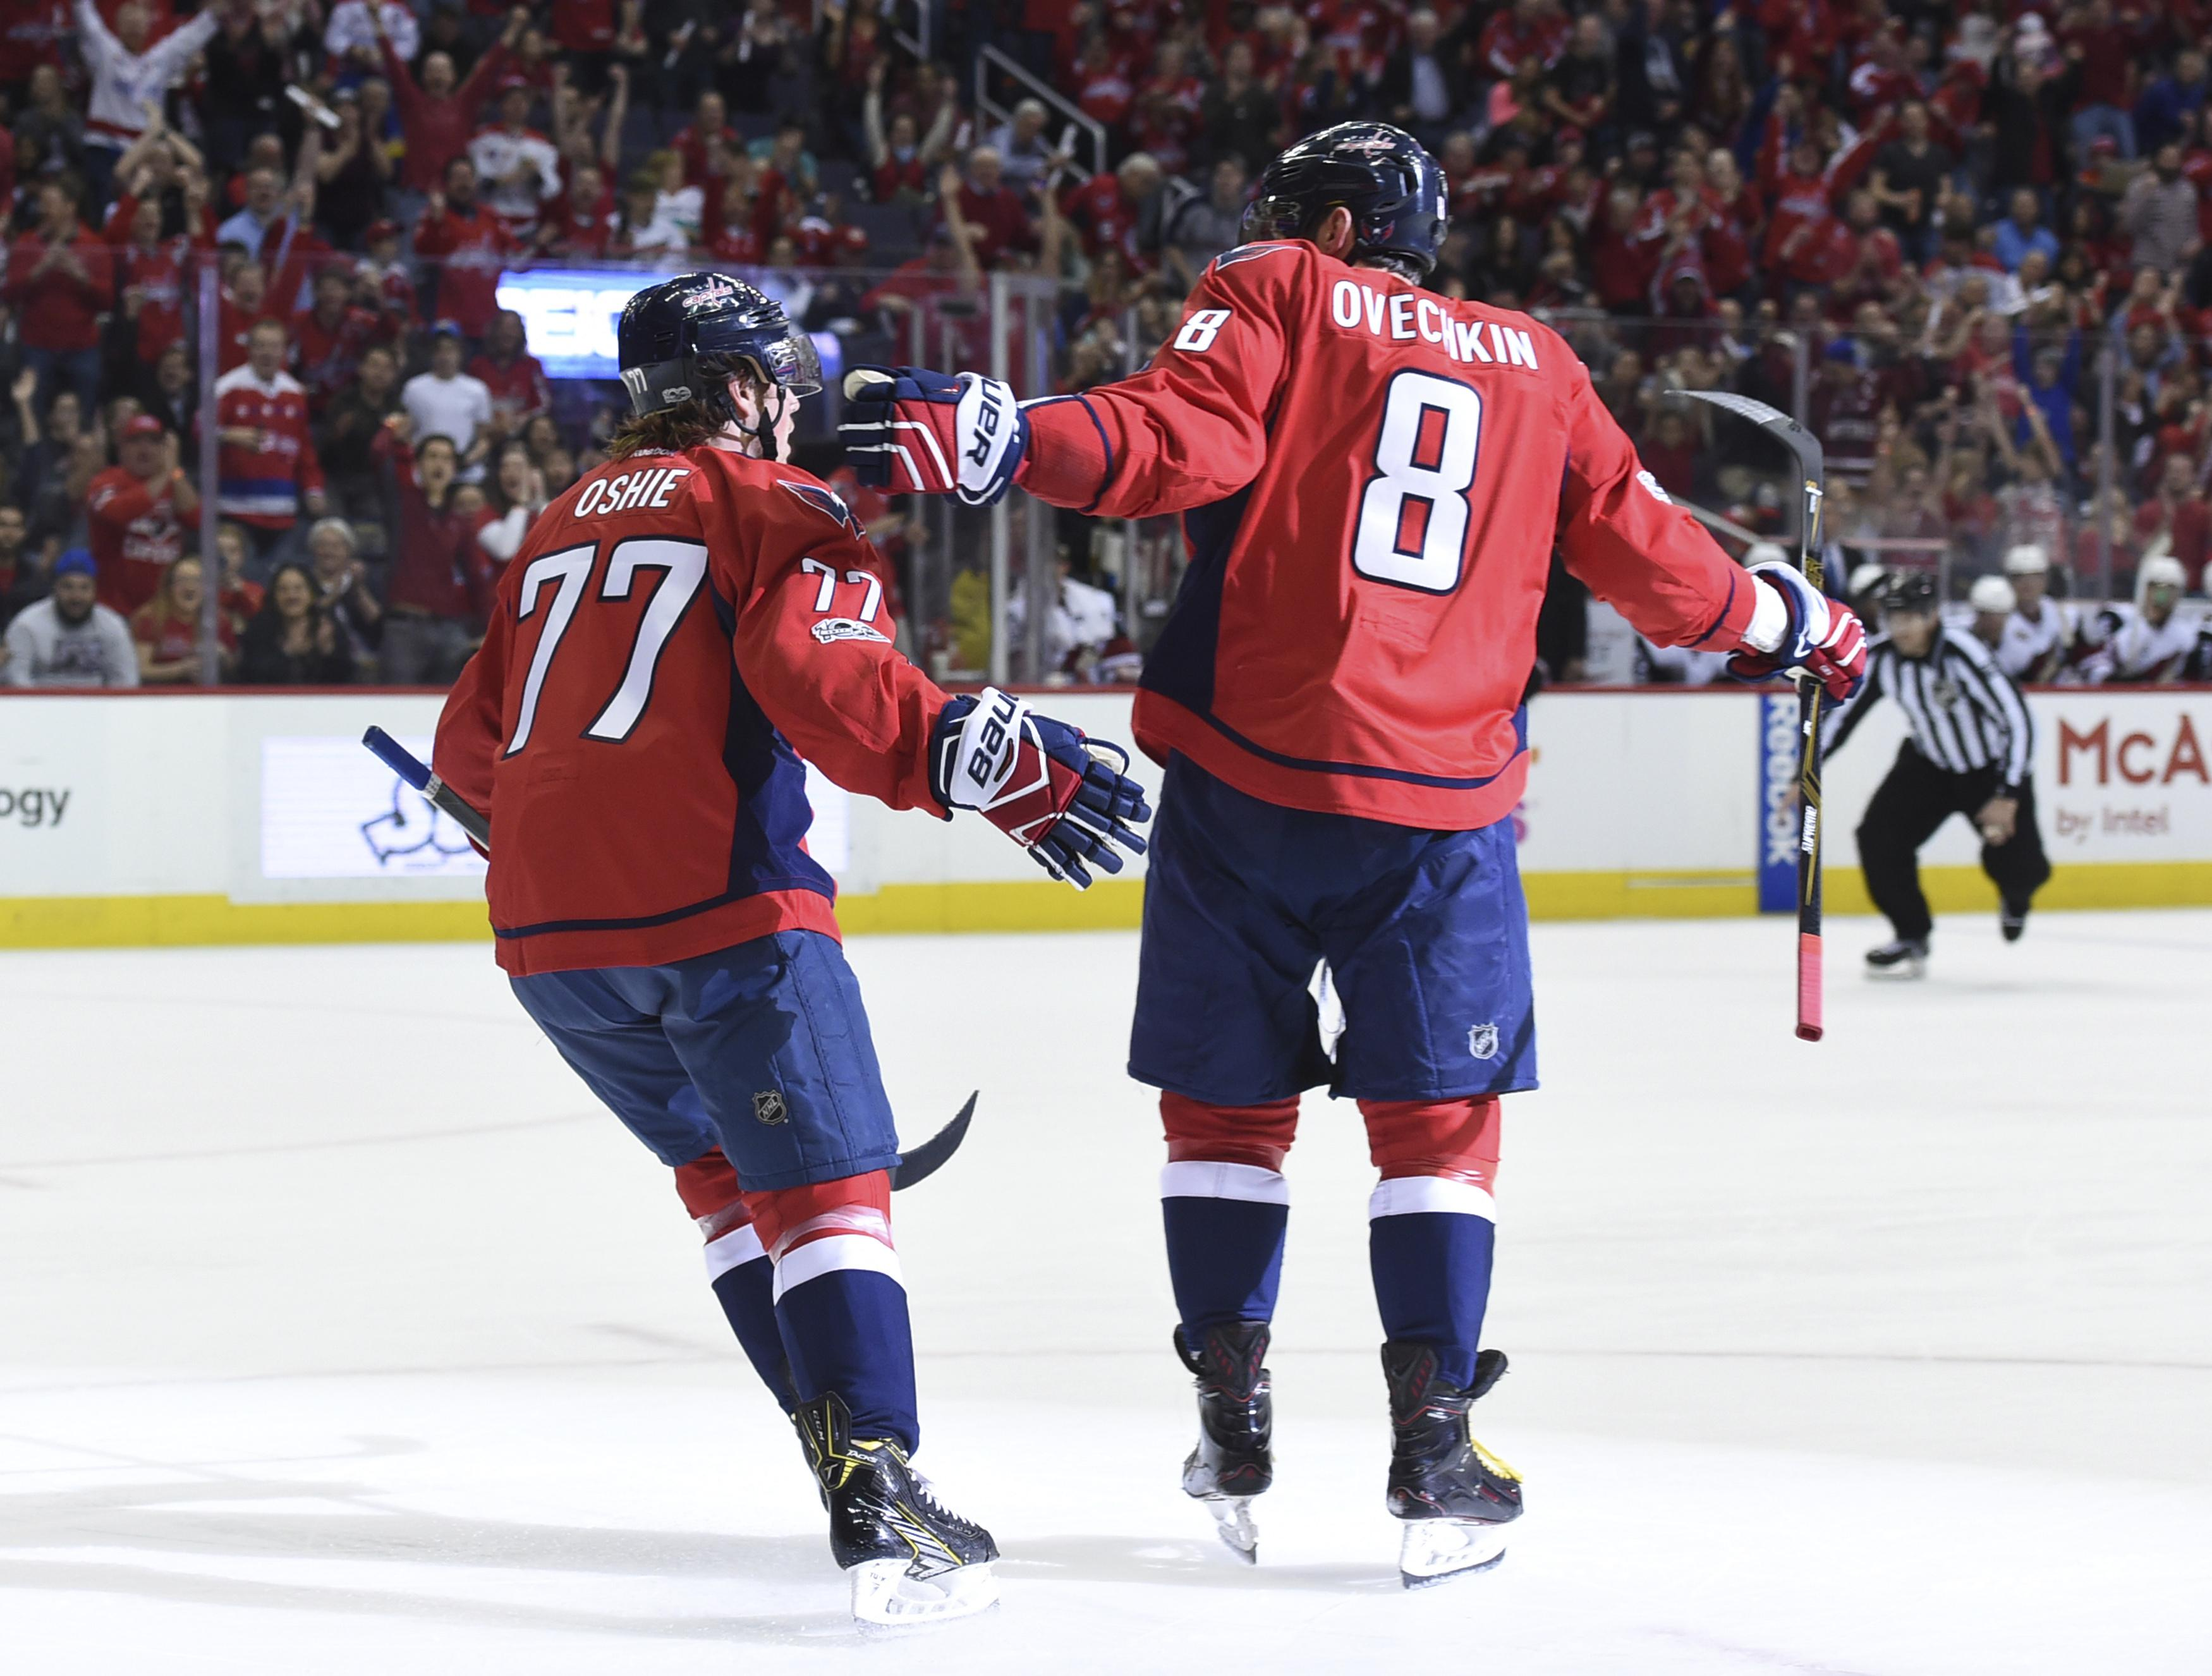 897d7b7b1f2 Washington s Alex Ovechkin (right) celebrates his goal with T.J. Oshie  during Saturday s win against